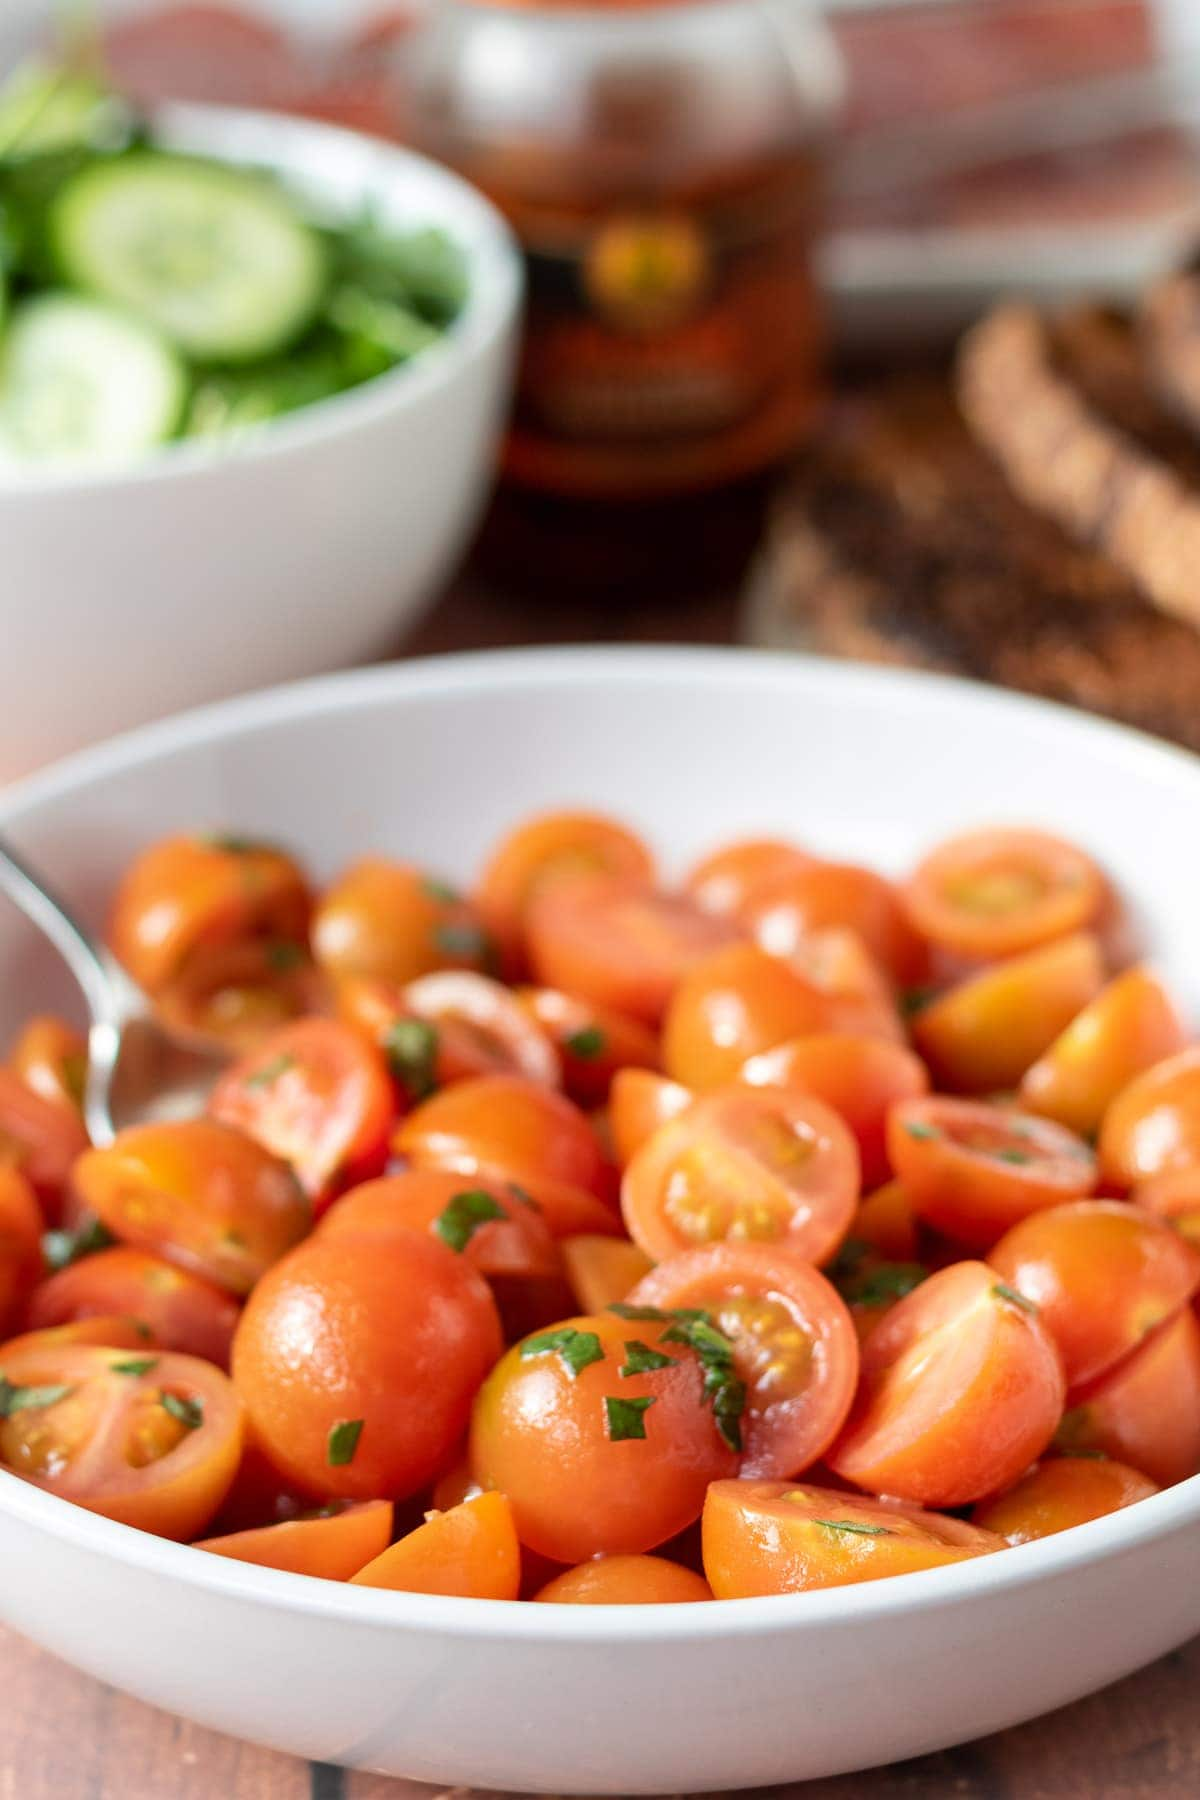 A bowl of tomato salad with another bowl with sliced cucumber in and a place of tasted bread in the background.